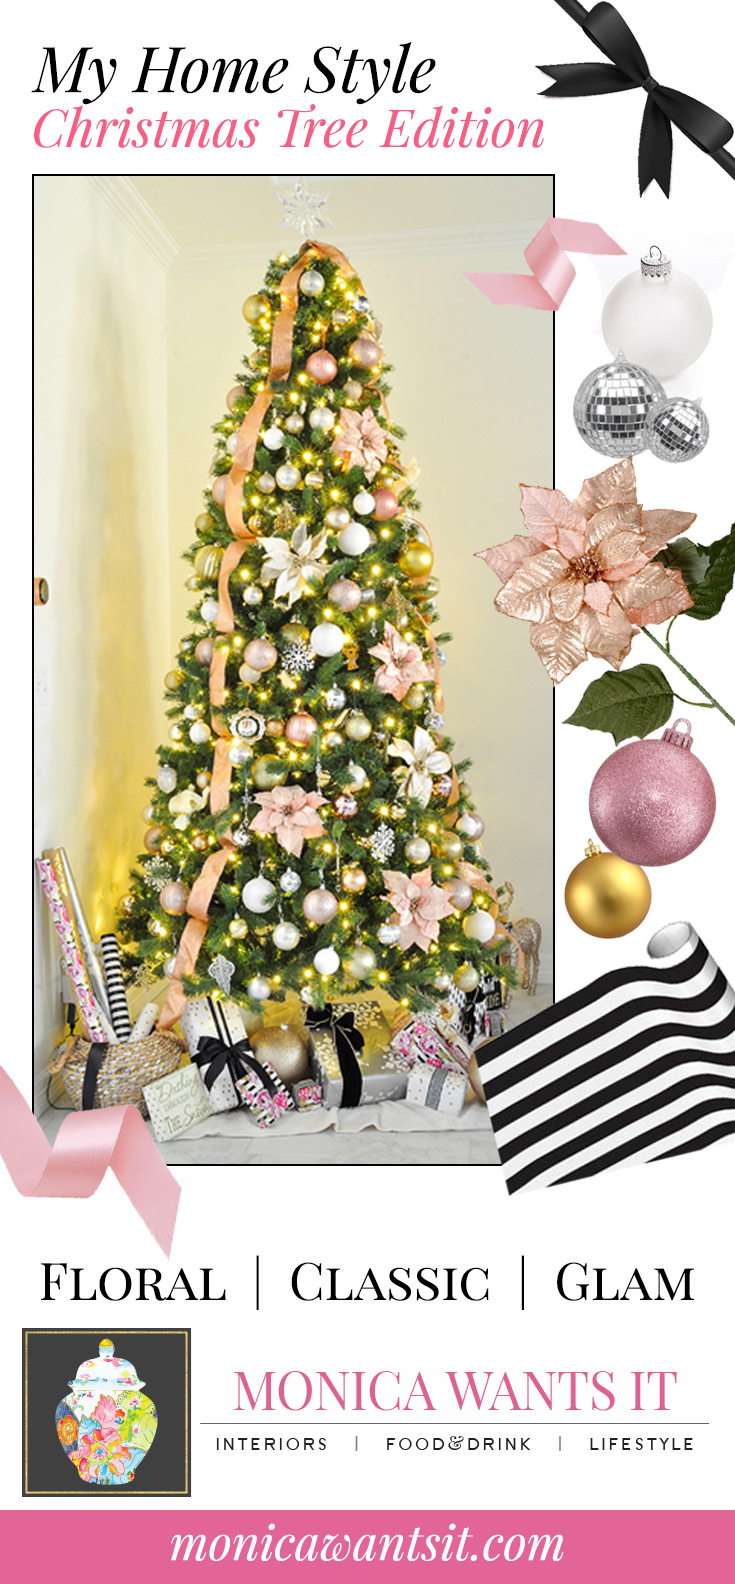 Blush pink, gold, silver and white holiday Christmas tree decor. | via monicawantsit.com